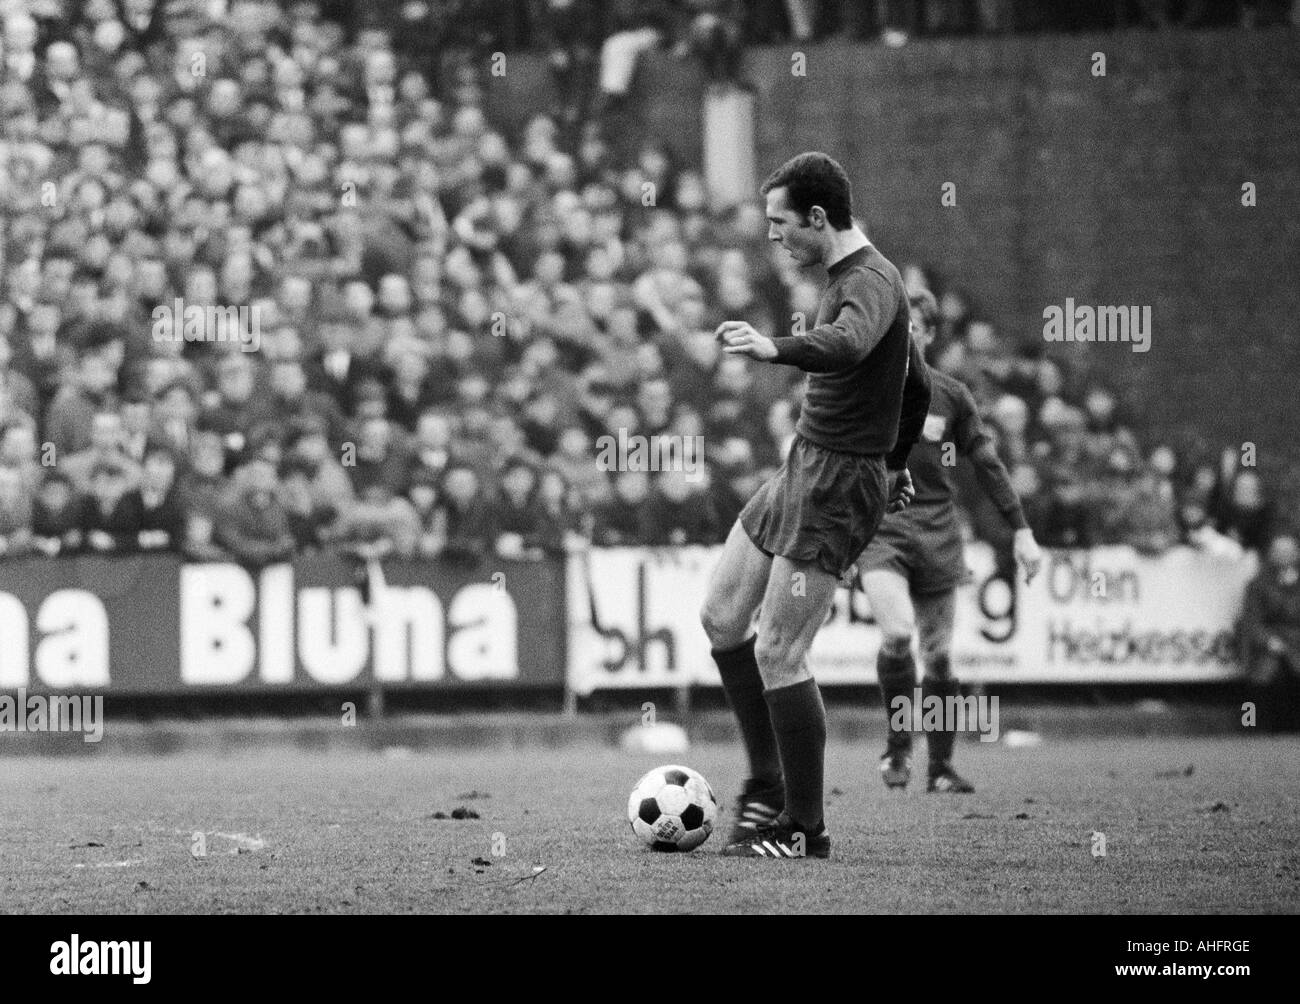 football, Bundesliga, 1967/1968, Boekelberg Stadium in Moenchengladbach, Borussia Moenchengladbach versus FC Bayern Munich 1:1, scene of the match, Franz Beckenbauer (FCB) in ball possession - Stock Image